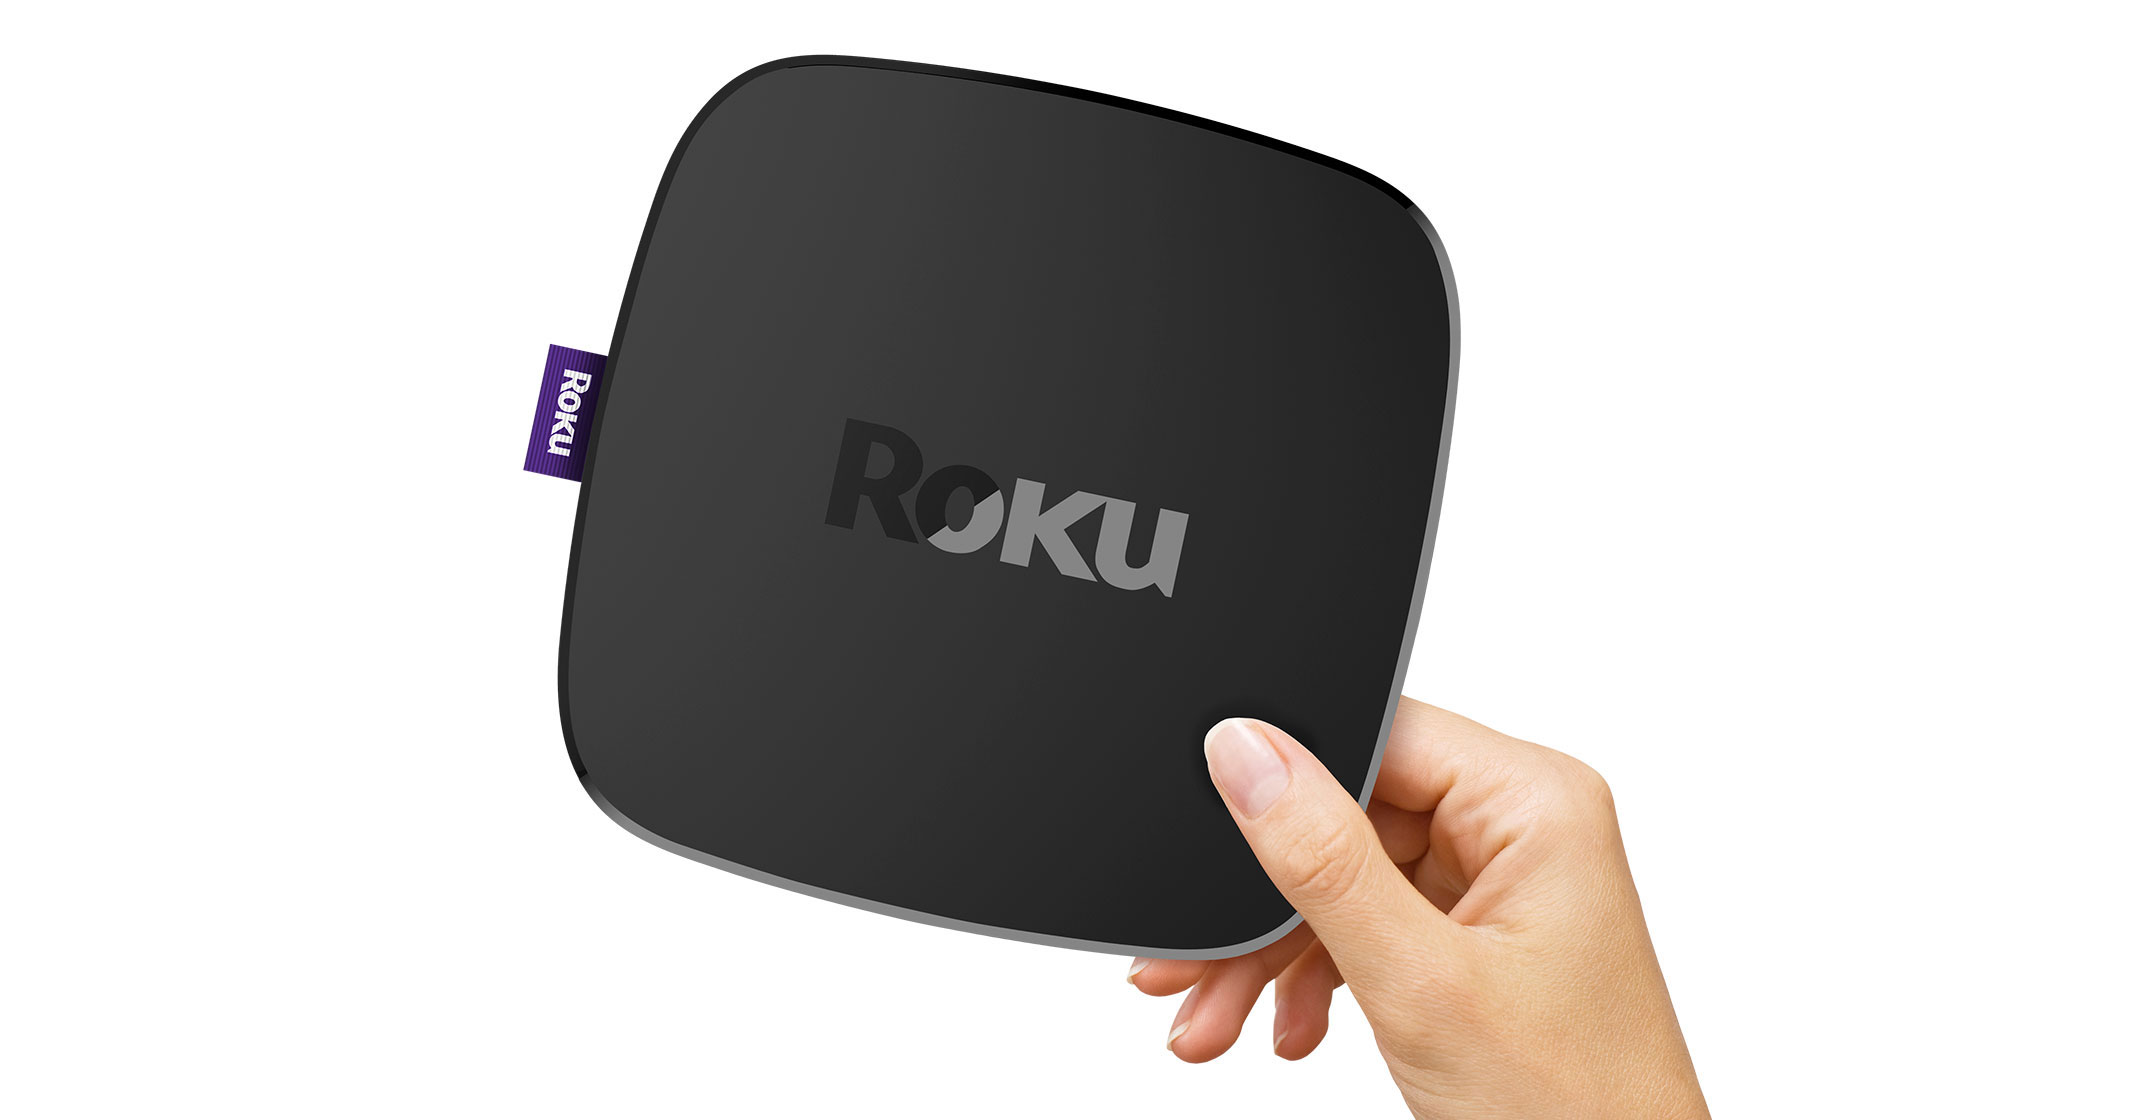 Roku soars on market debut techcentral rokus trading debut has catapulted it among the biggest gainers for newly listed technology and communications stocks as investors bet on the success of buycottarizona